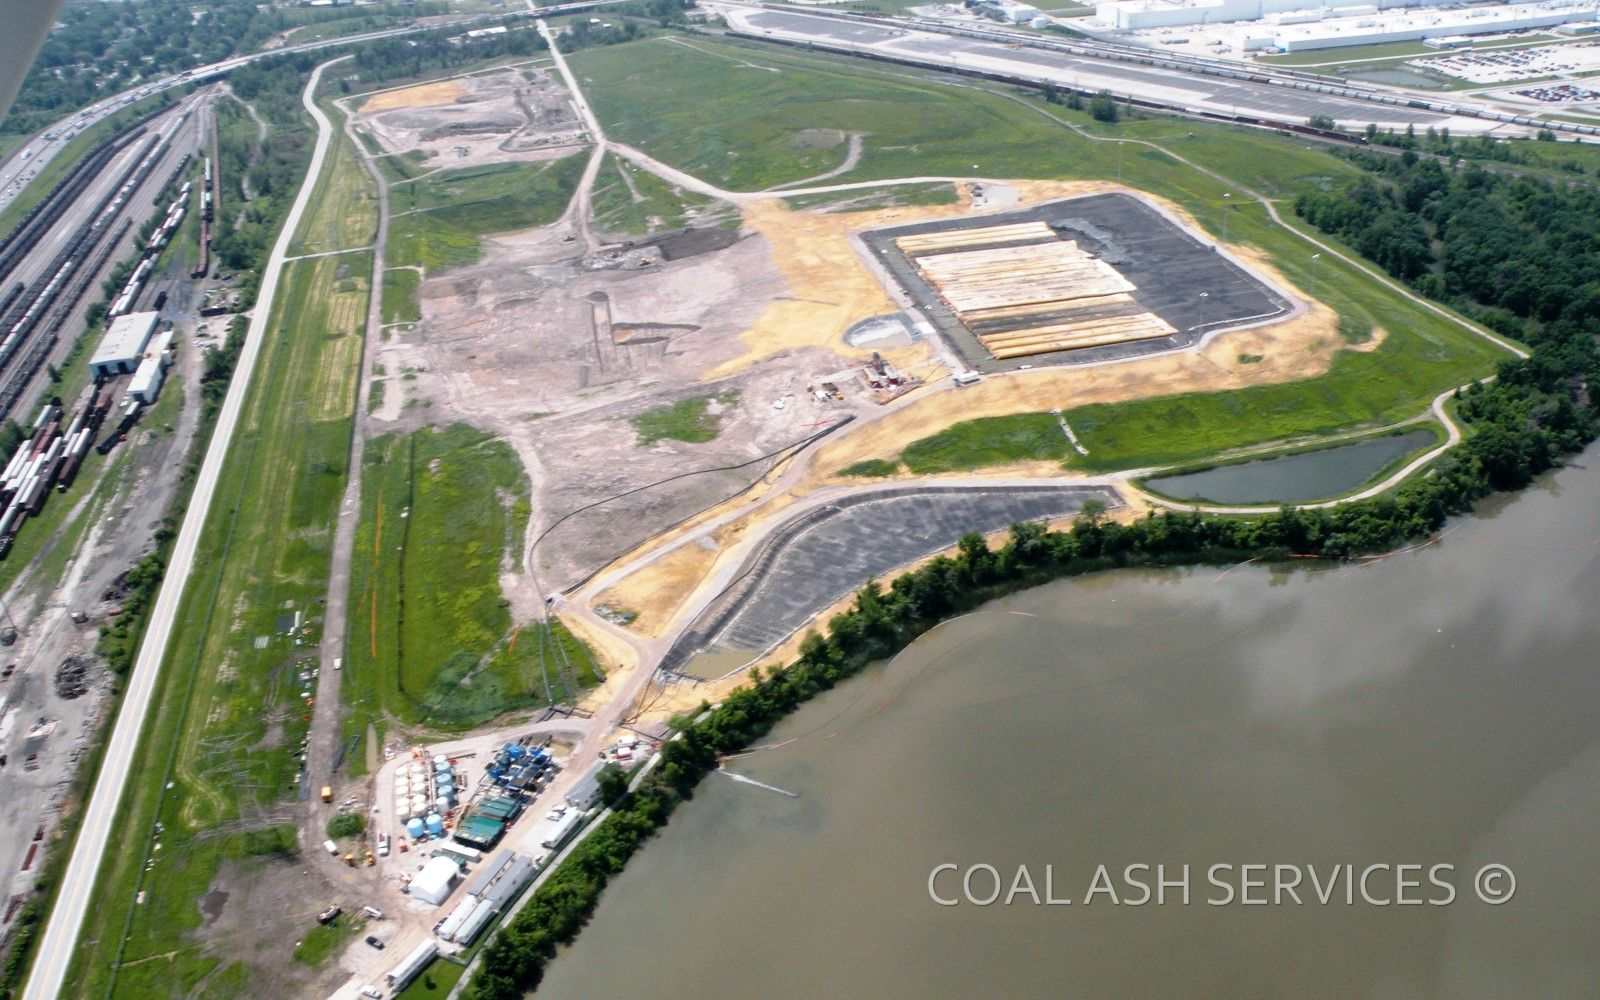 Aerial view of in-landfill dewatering operations